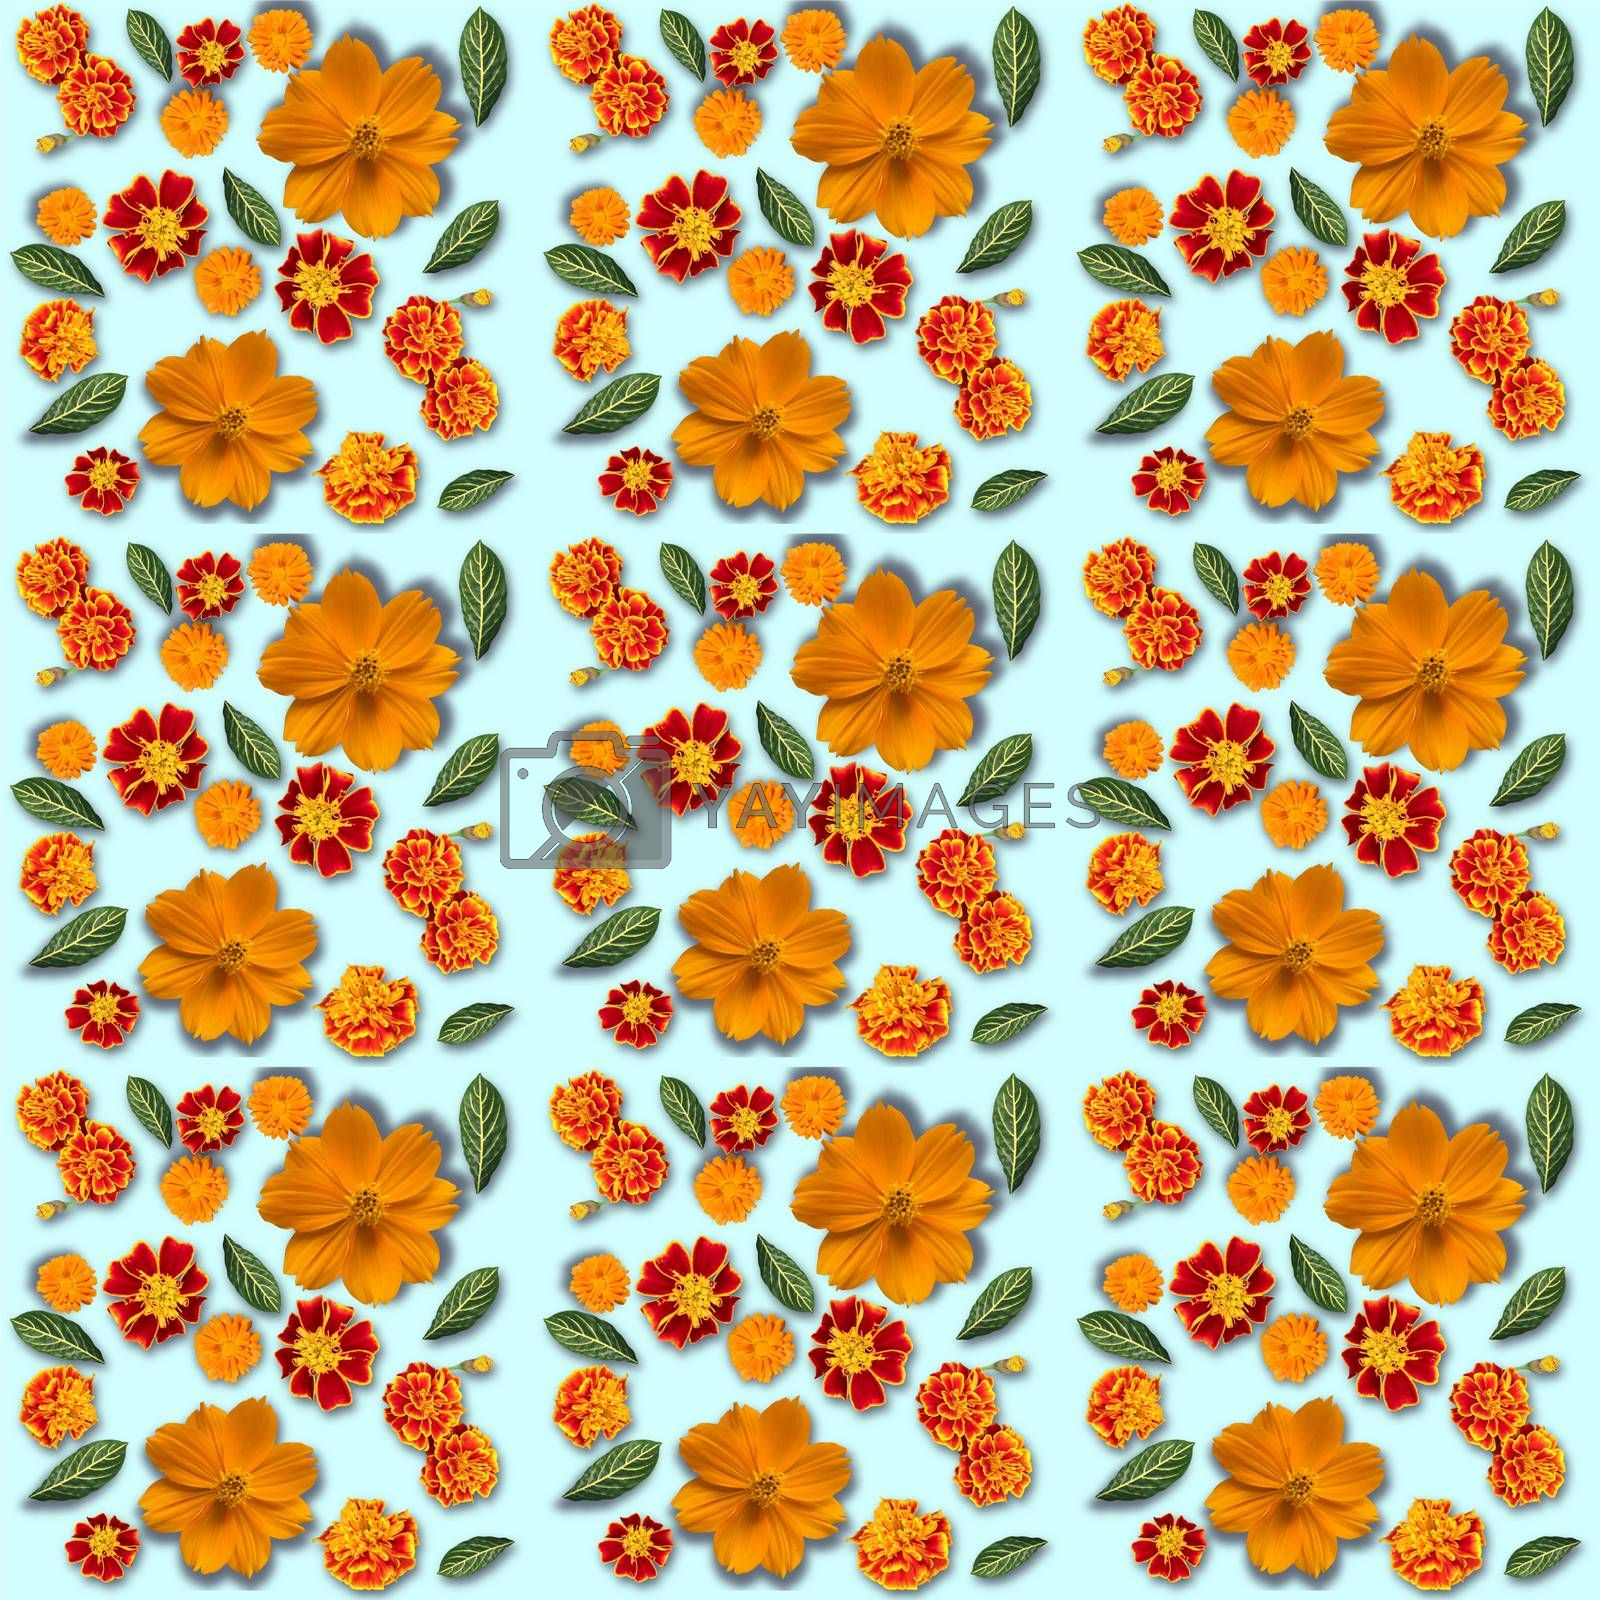 Yellow flowers pattern on a blue background. by Margolana